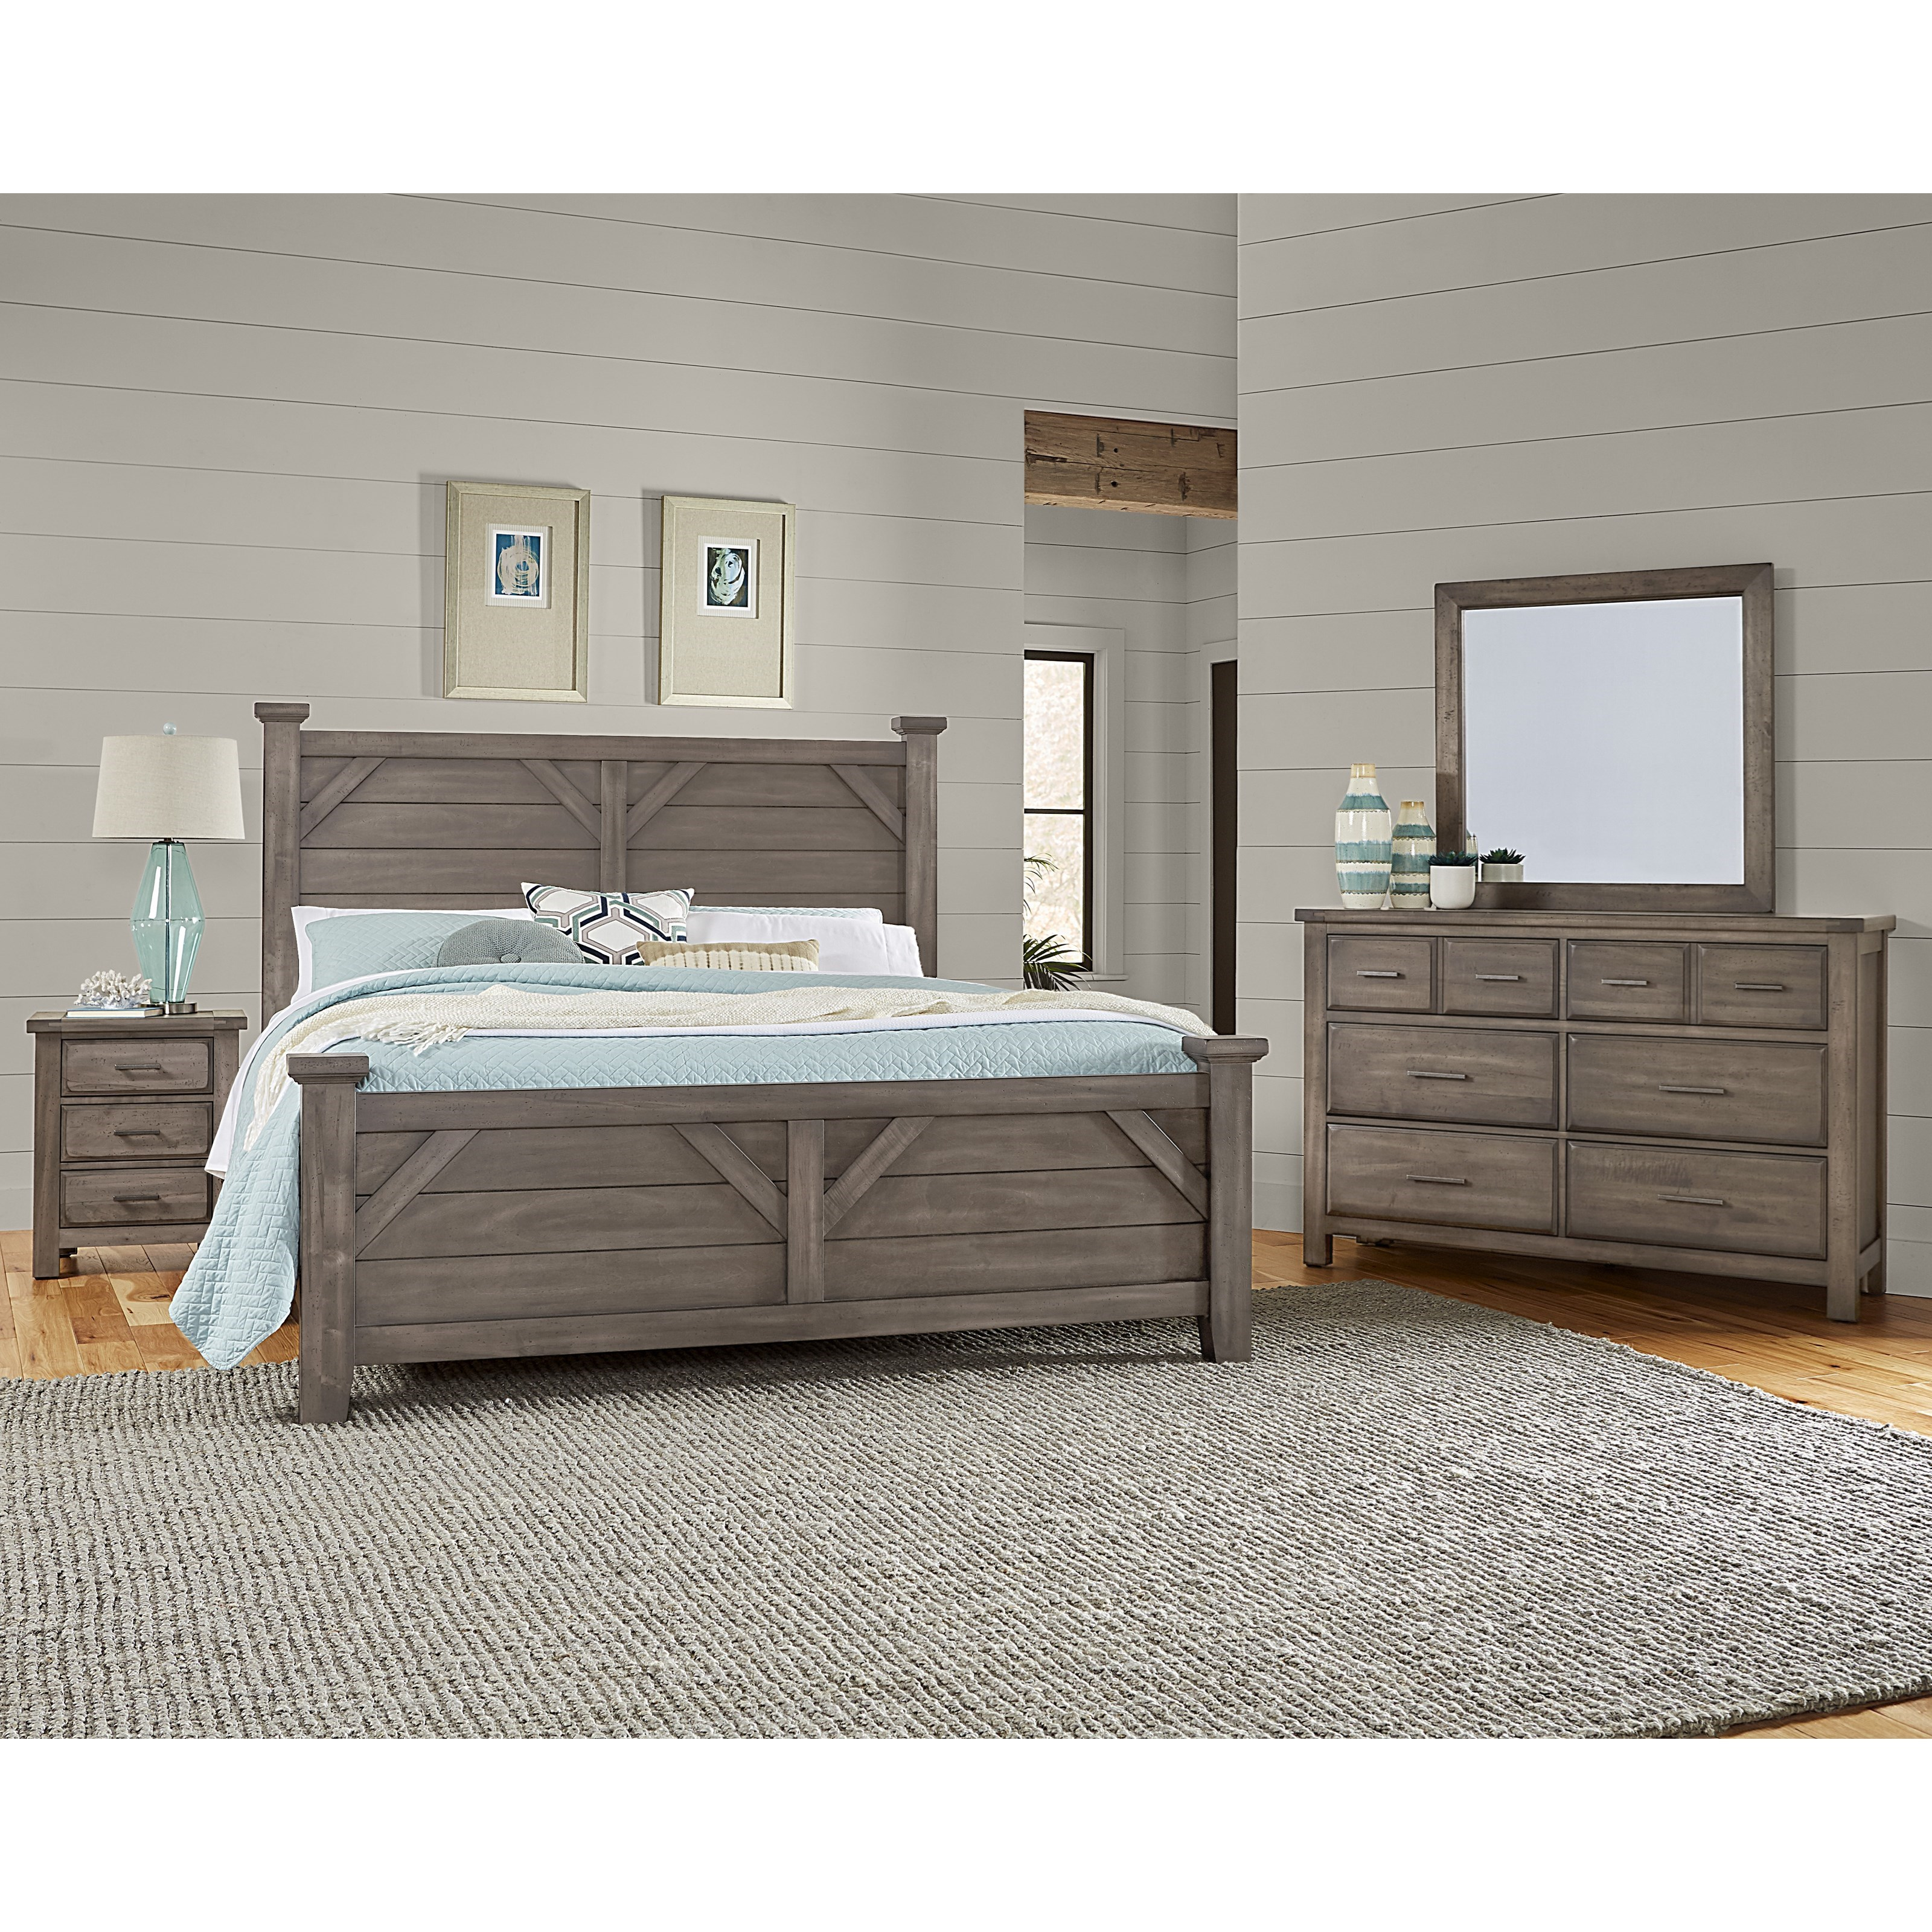 Chestnut Creek Queen Bedroom Group by Centennial Solids at Rooms and Rest